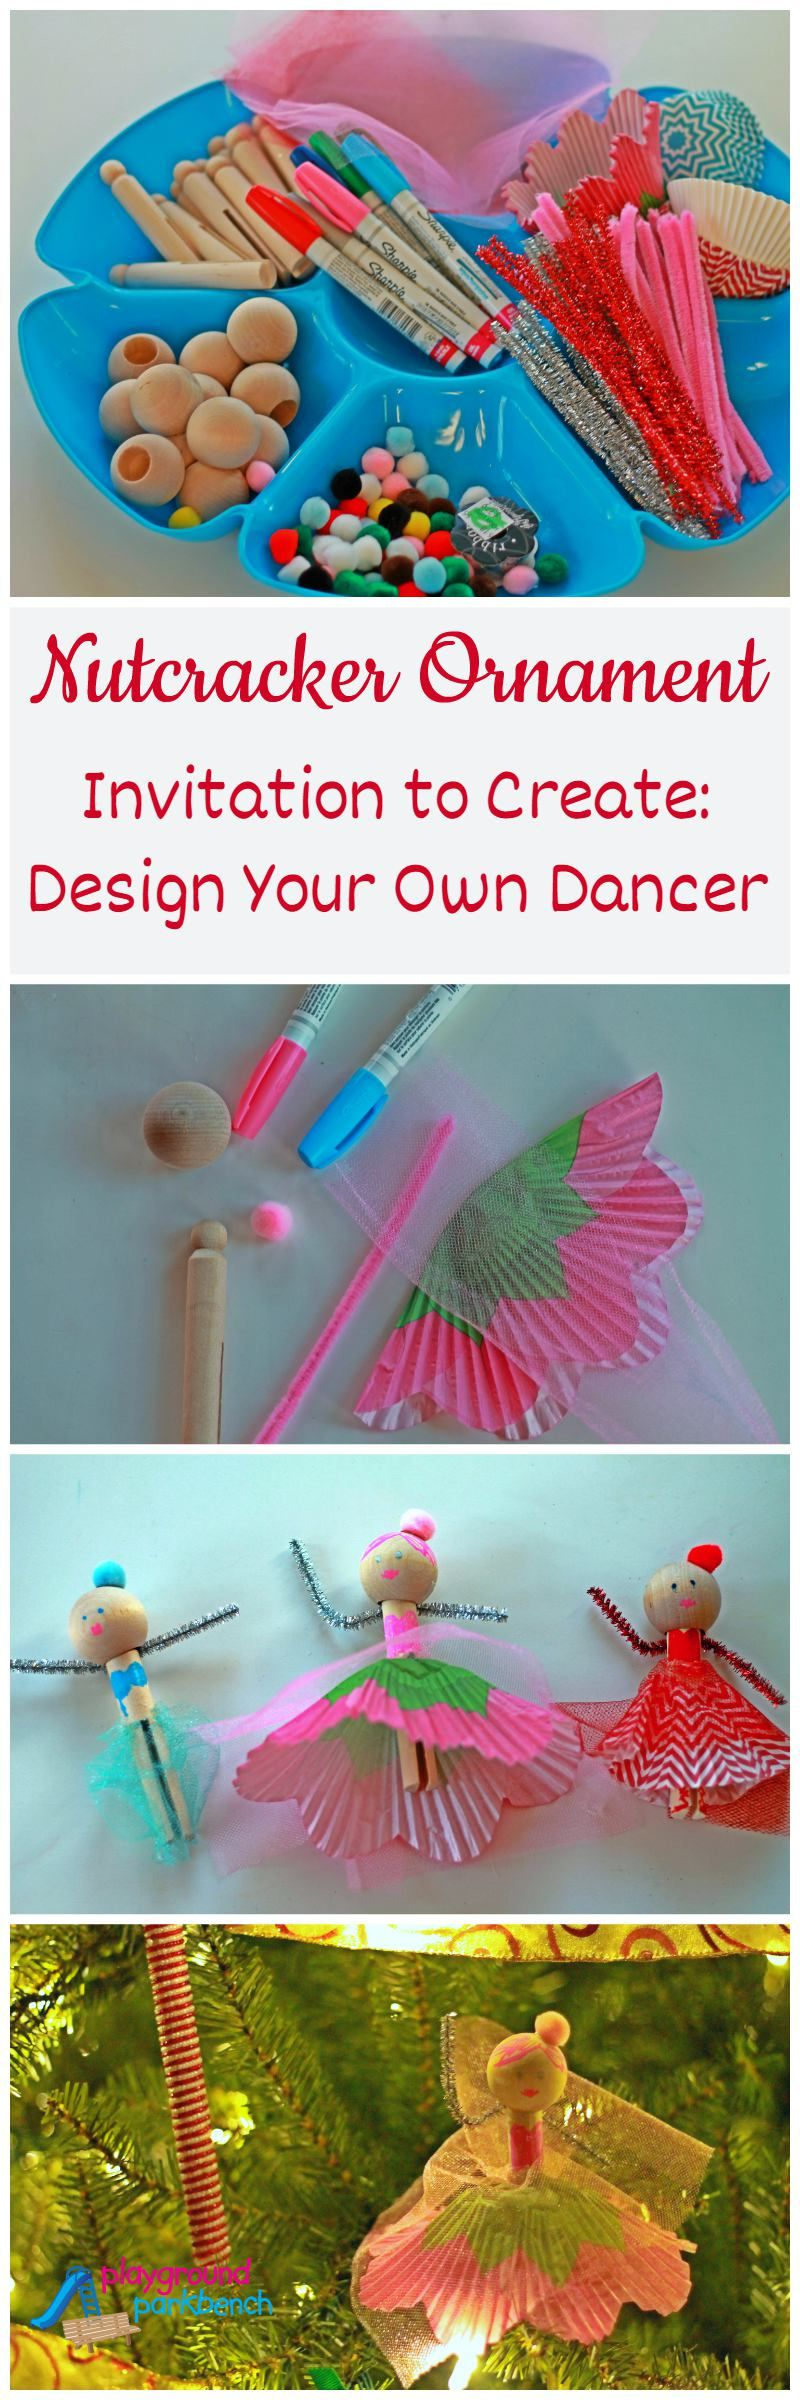 Design your own christmas ornaments - The First Post In A Series To Plan The Perfect Nutcracker Holiday Party This Invitation To Create Is The Perfect Activity For Your Kids Holiday Party